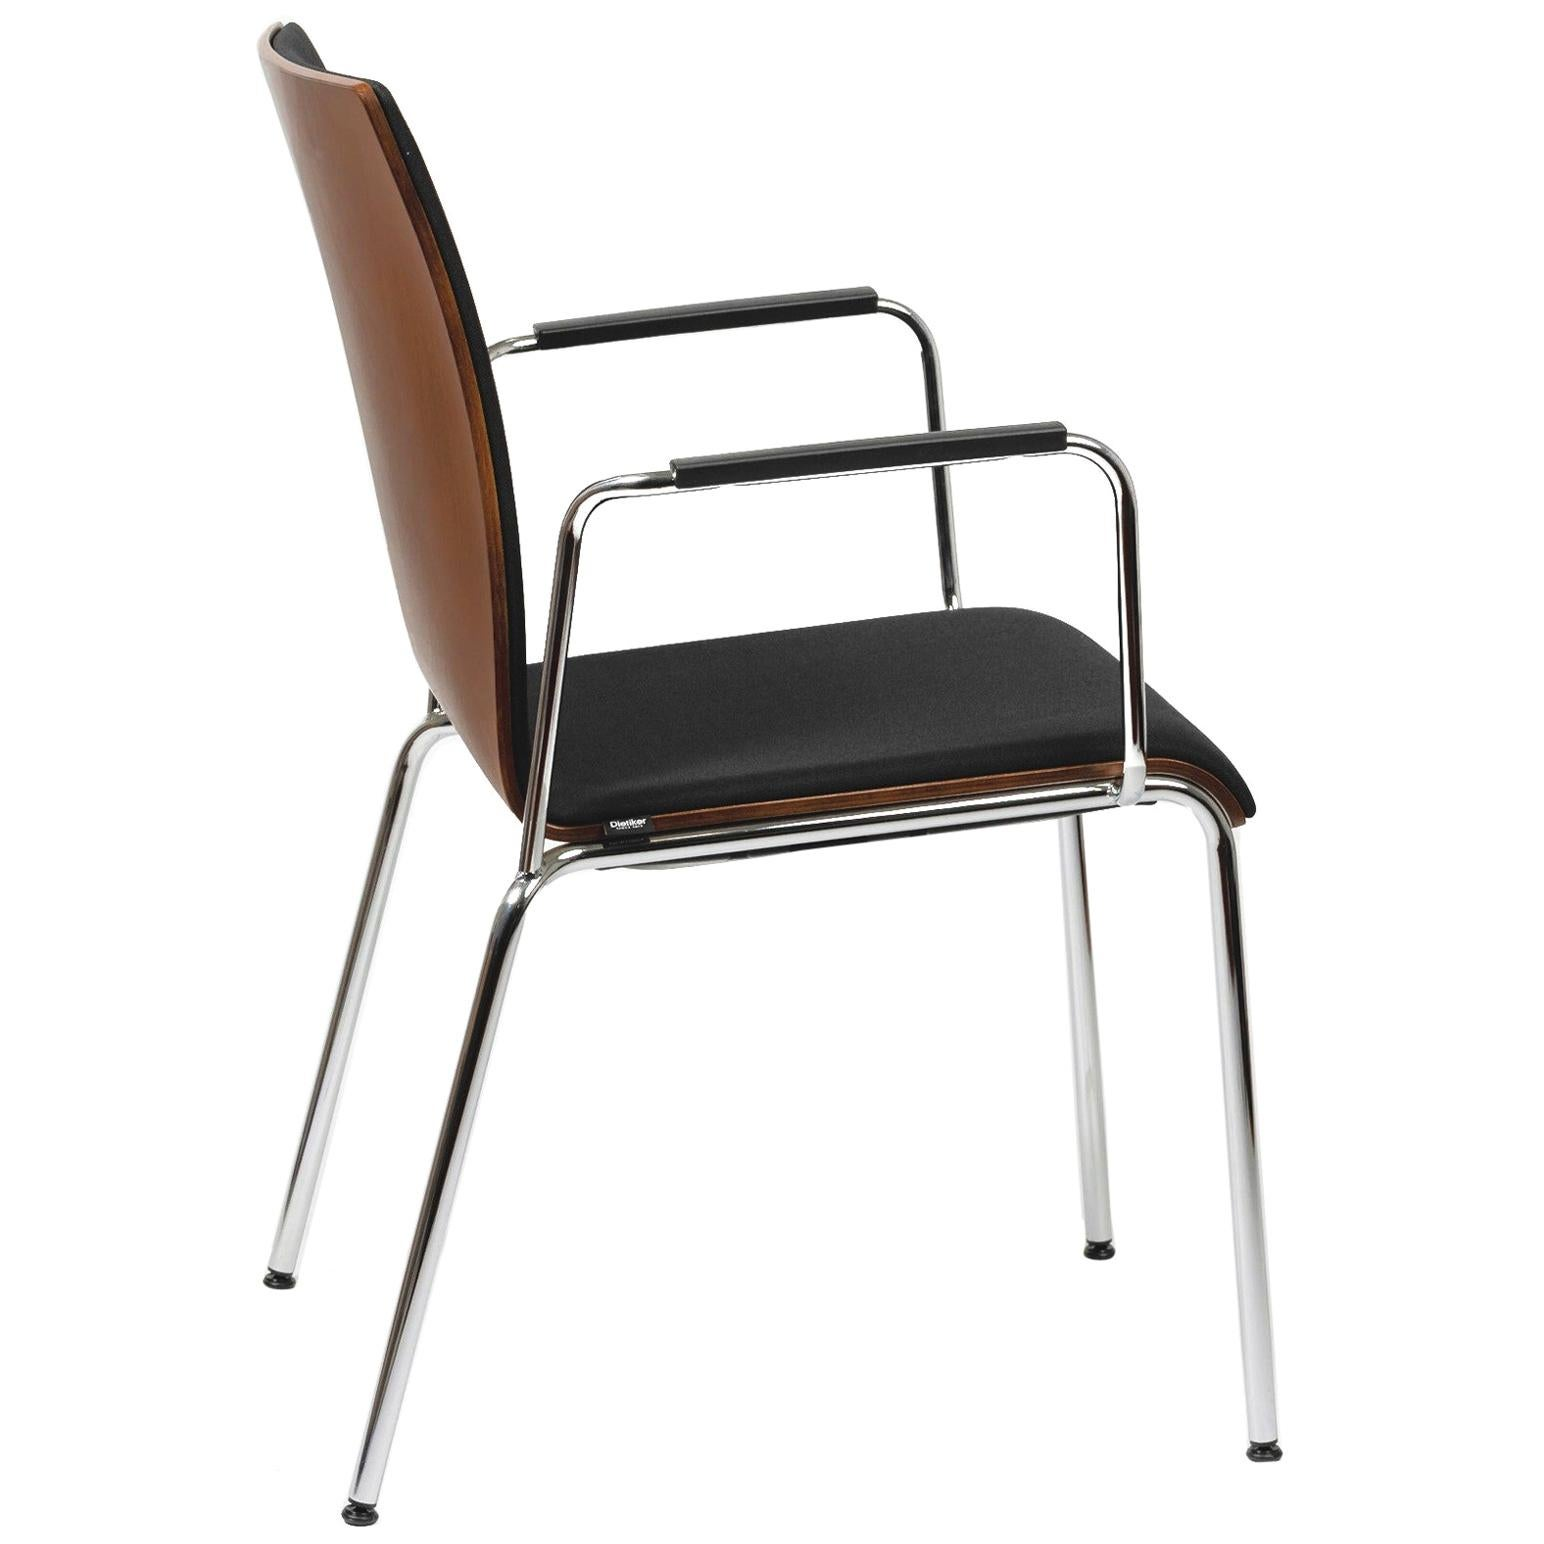 Dietiker Poro L-Swiss Chair, Beechwood, Brown with Black Upholstery, in Stock